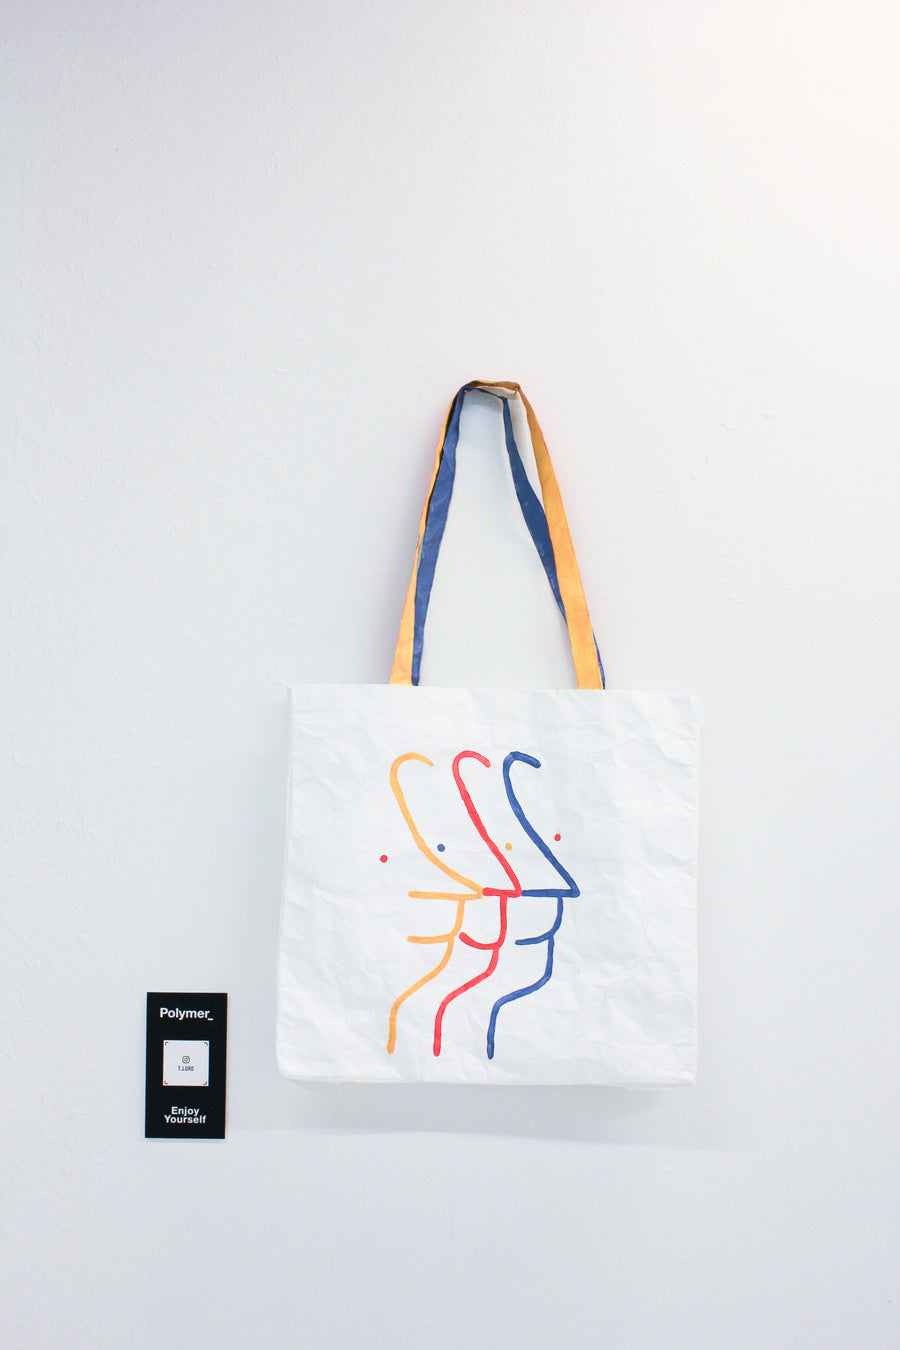 Polymer_ Enjoy Yourself Art Tote by Taylor Mousaw